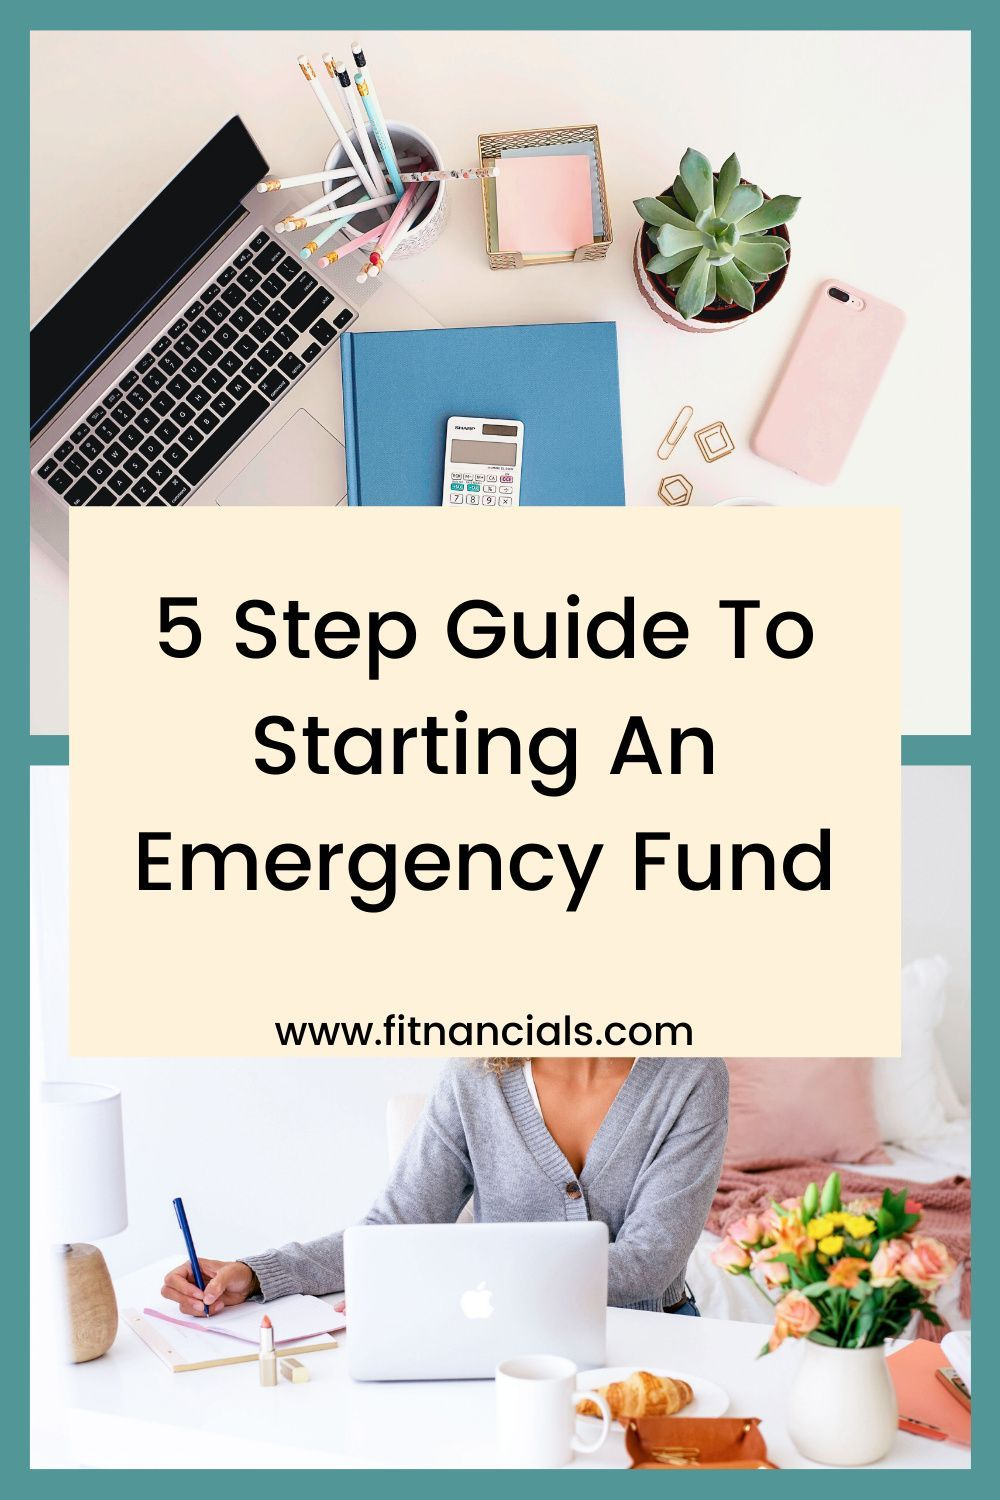 5 Step Guide To Starting An Emergency Fund In 2020 Emergency Fund Emergency Fund